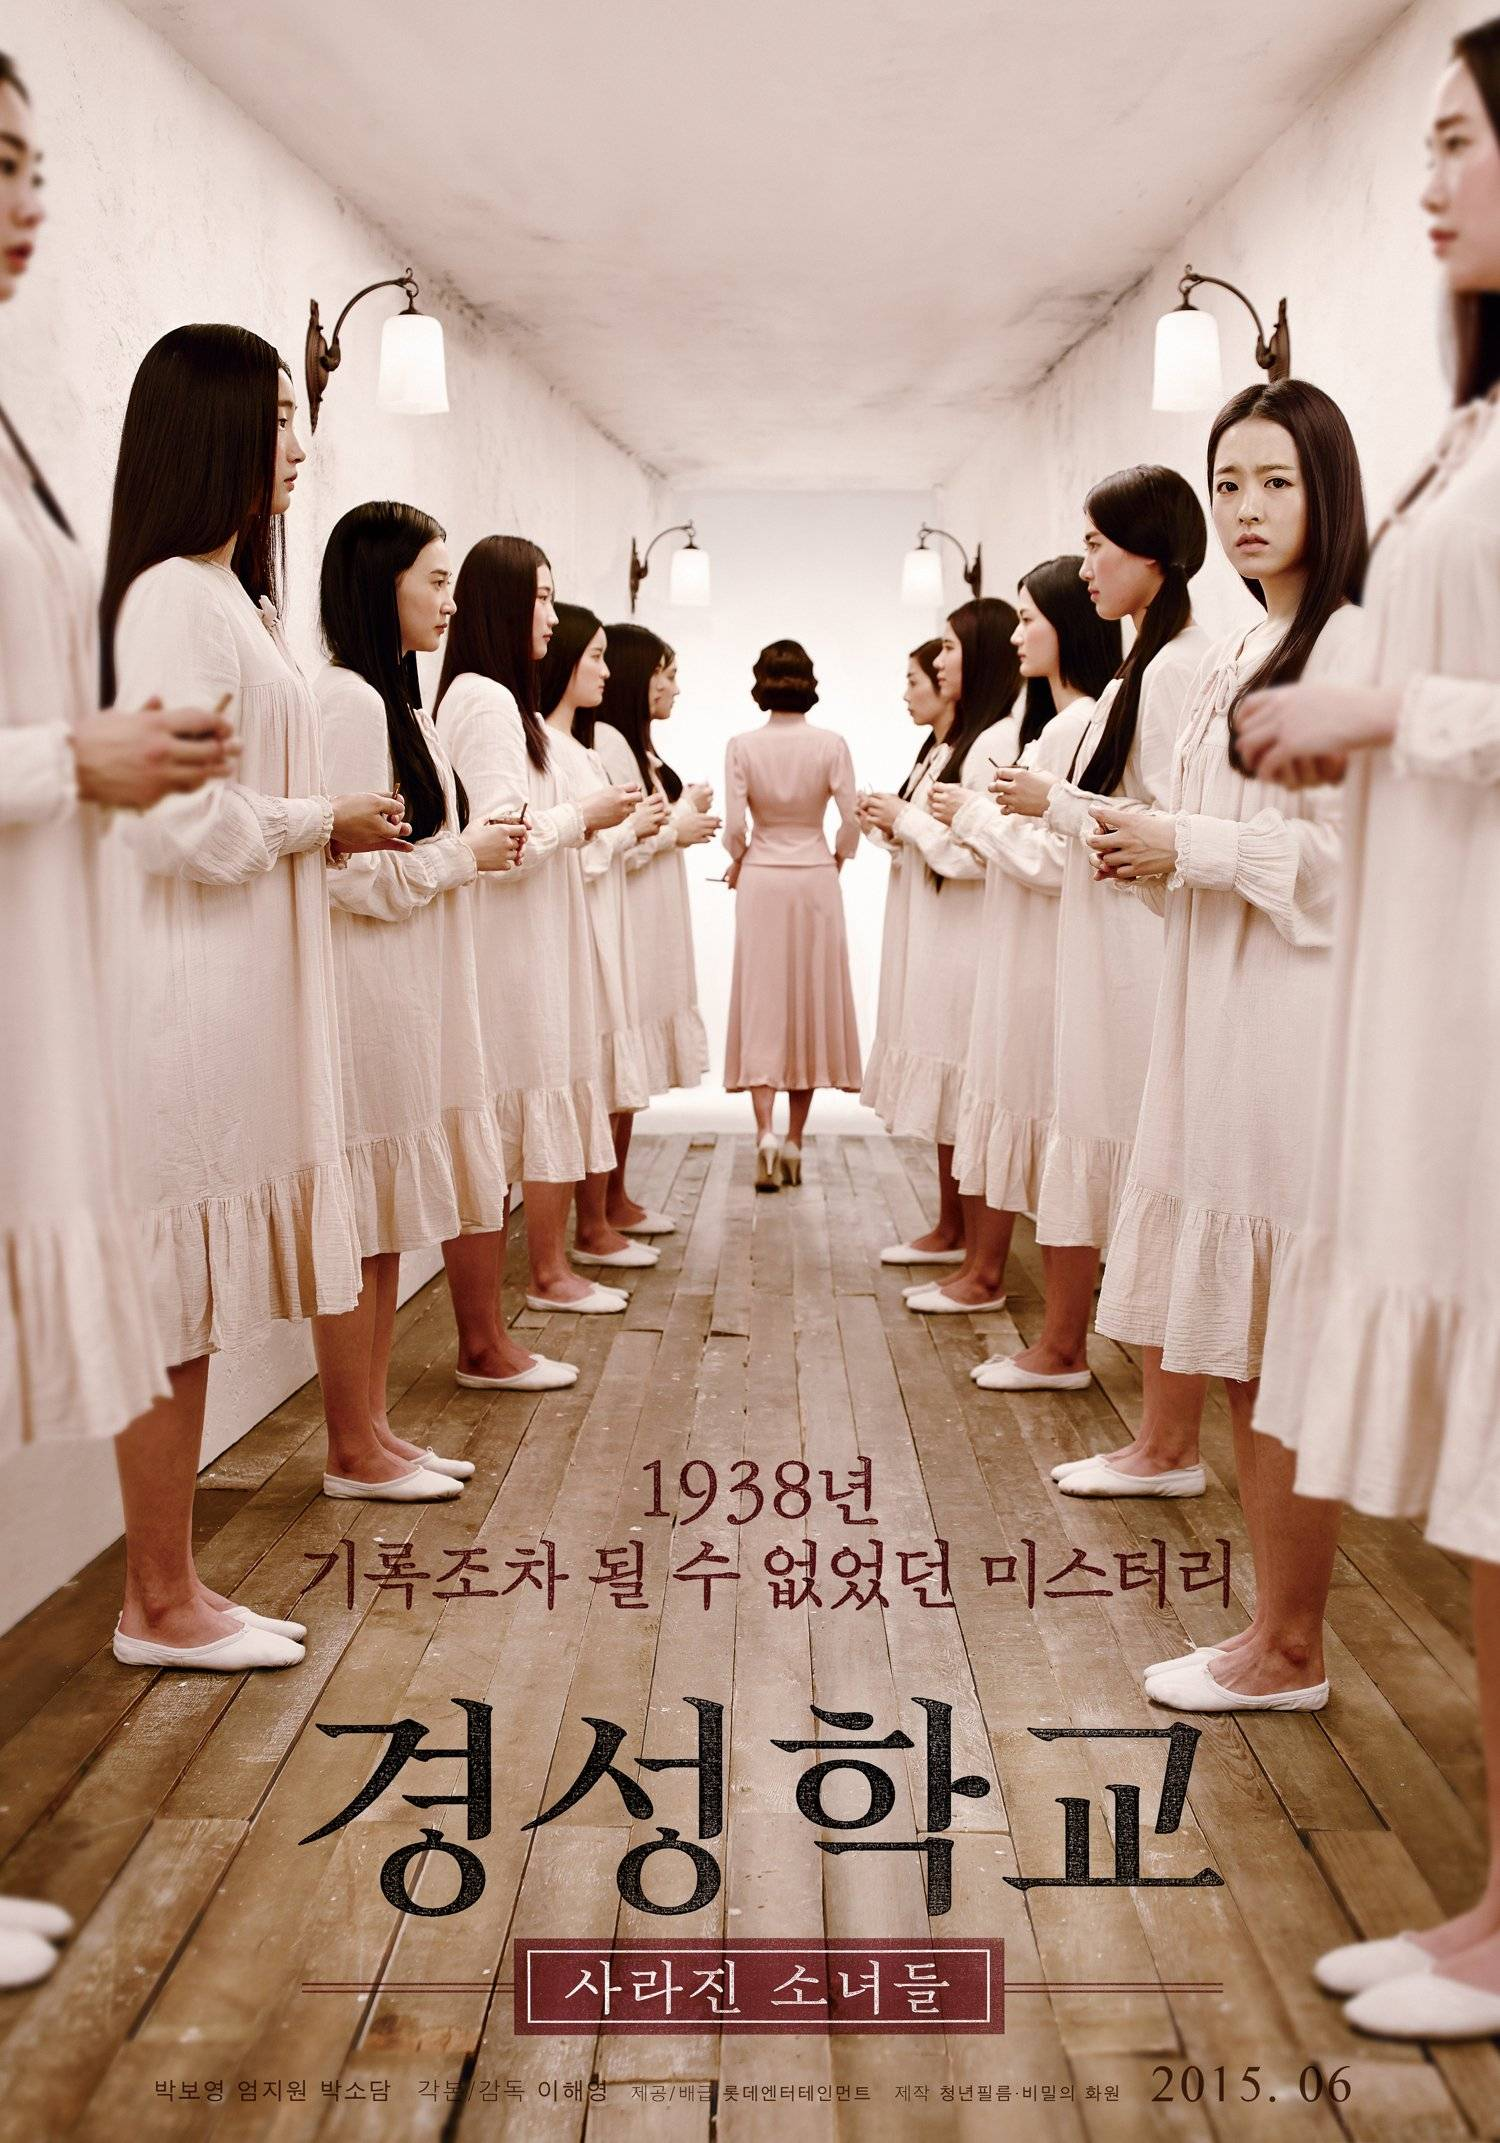 free, movie download, 2015, ryemovies, ganool, film korea update, The Silenced 2015 경성학교: 사라진 소녀들, film semi 18+, Park Bo-Young, Uhm Ji-Won, Park So-Dam